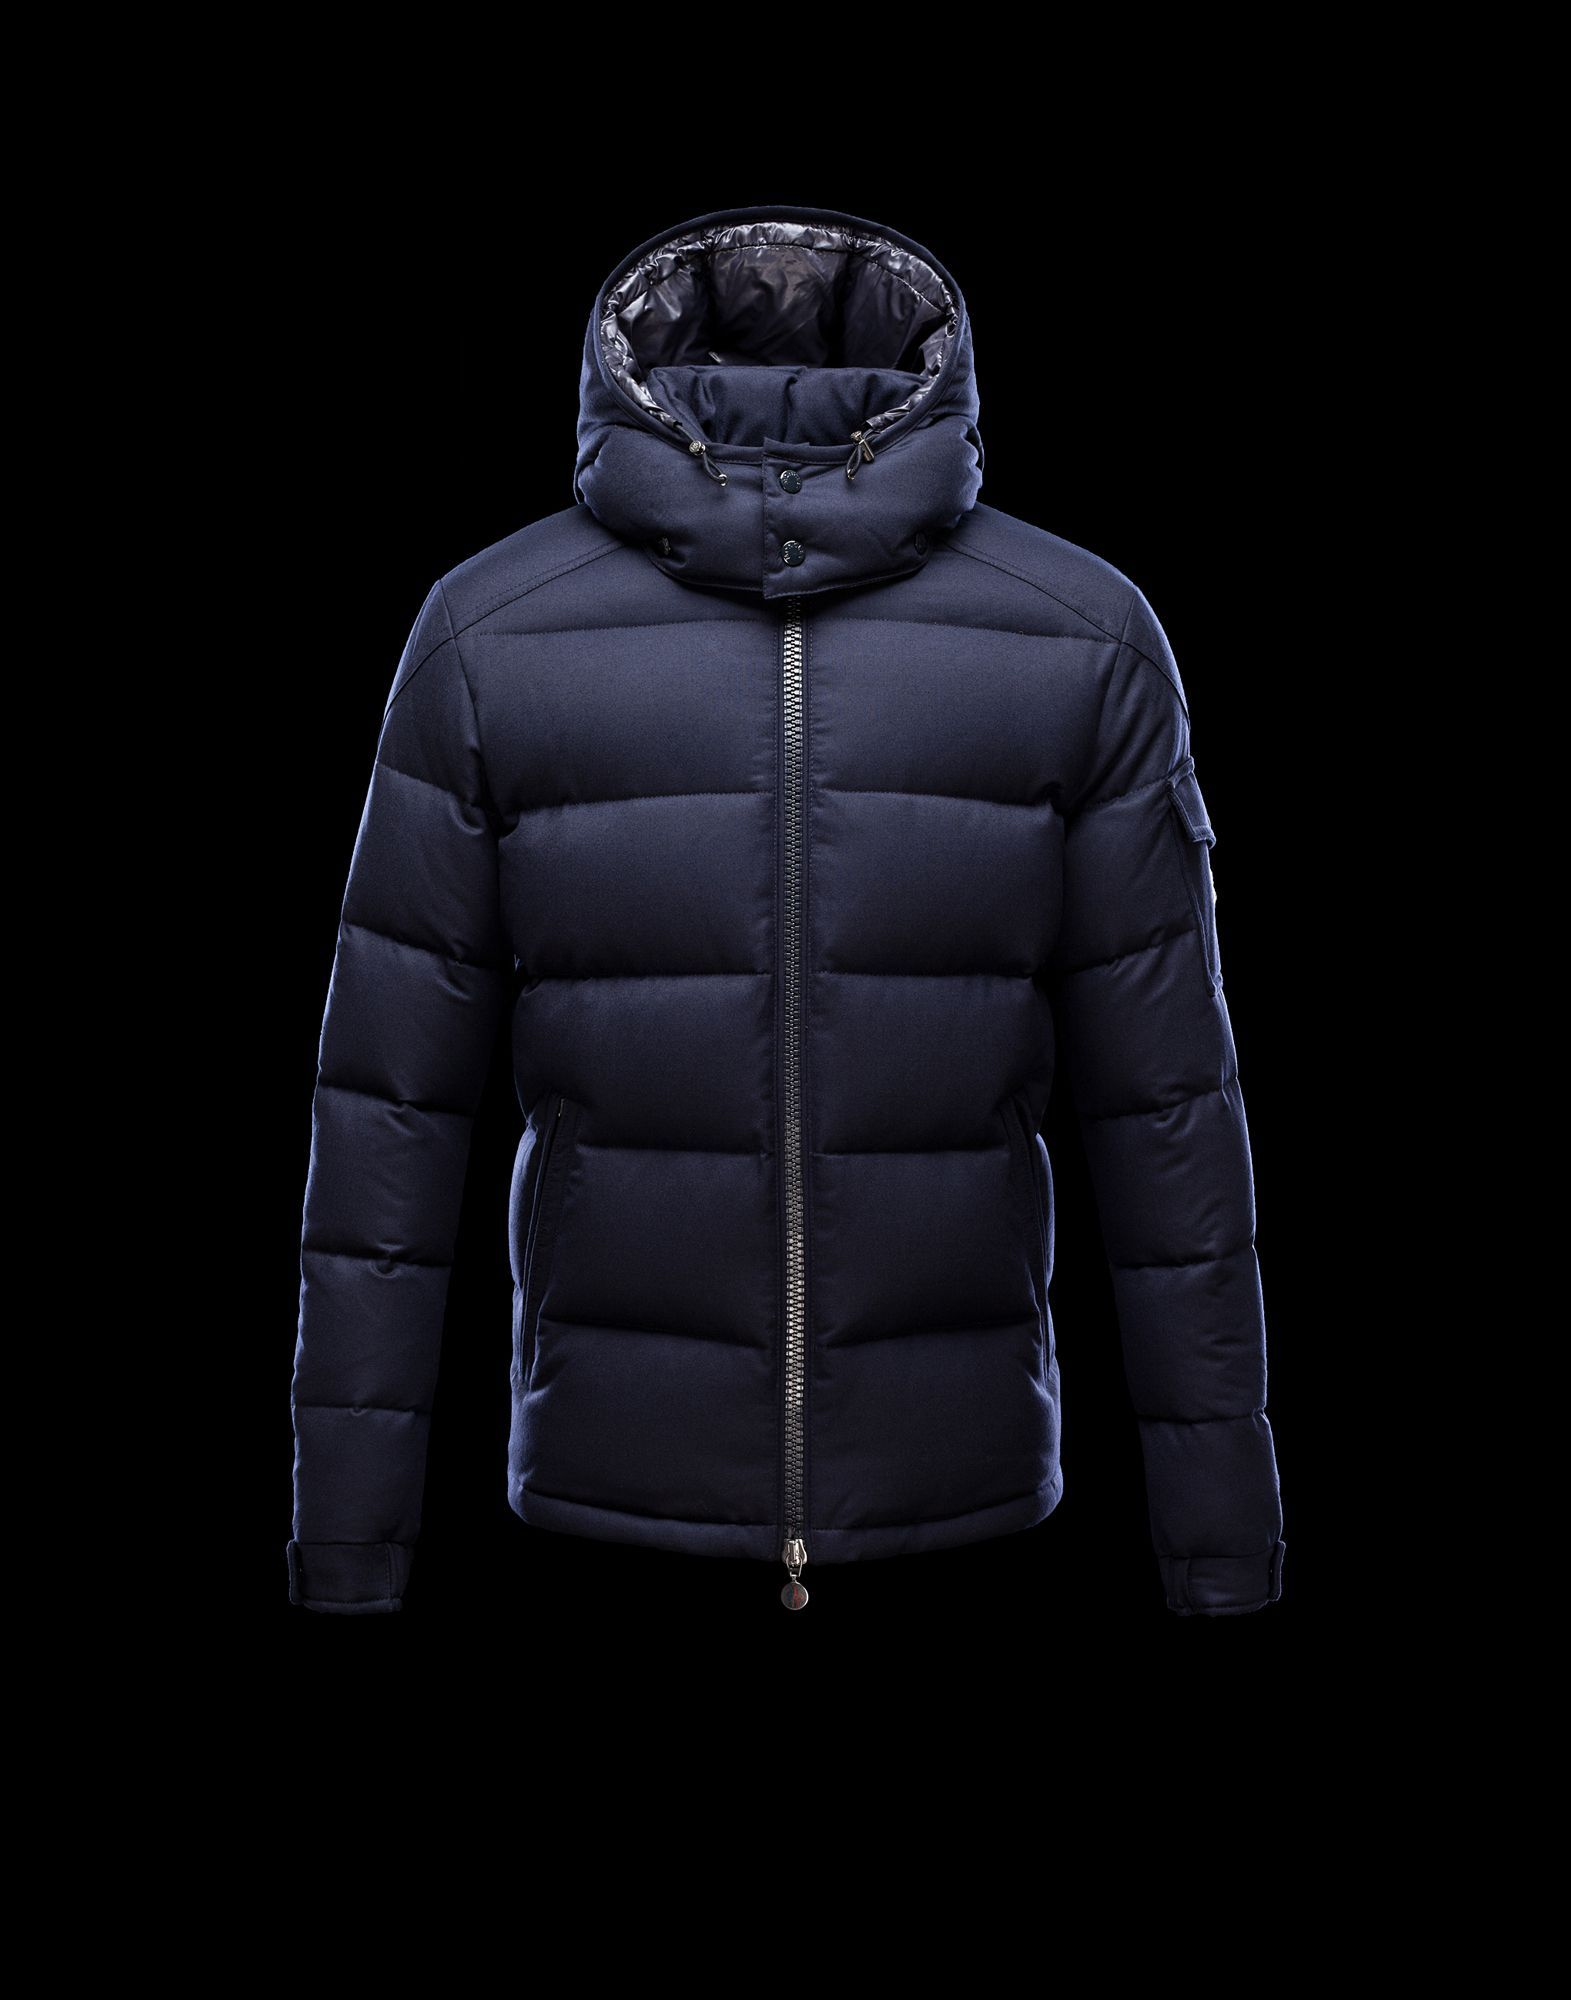 Jacket Men - Outerwear Men on Moncler Online Store | Style - M ...